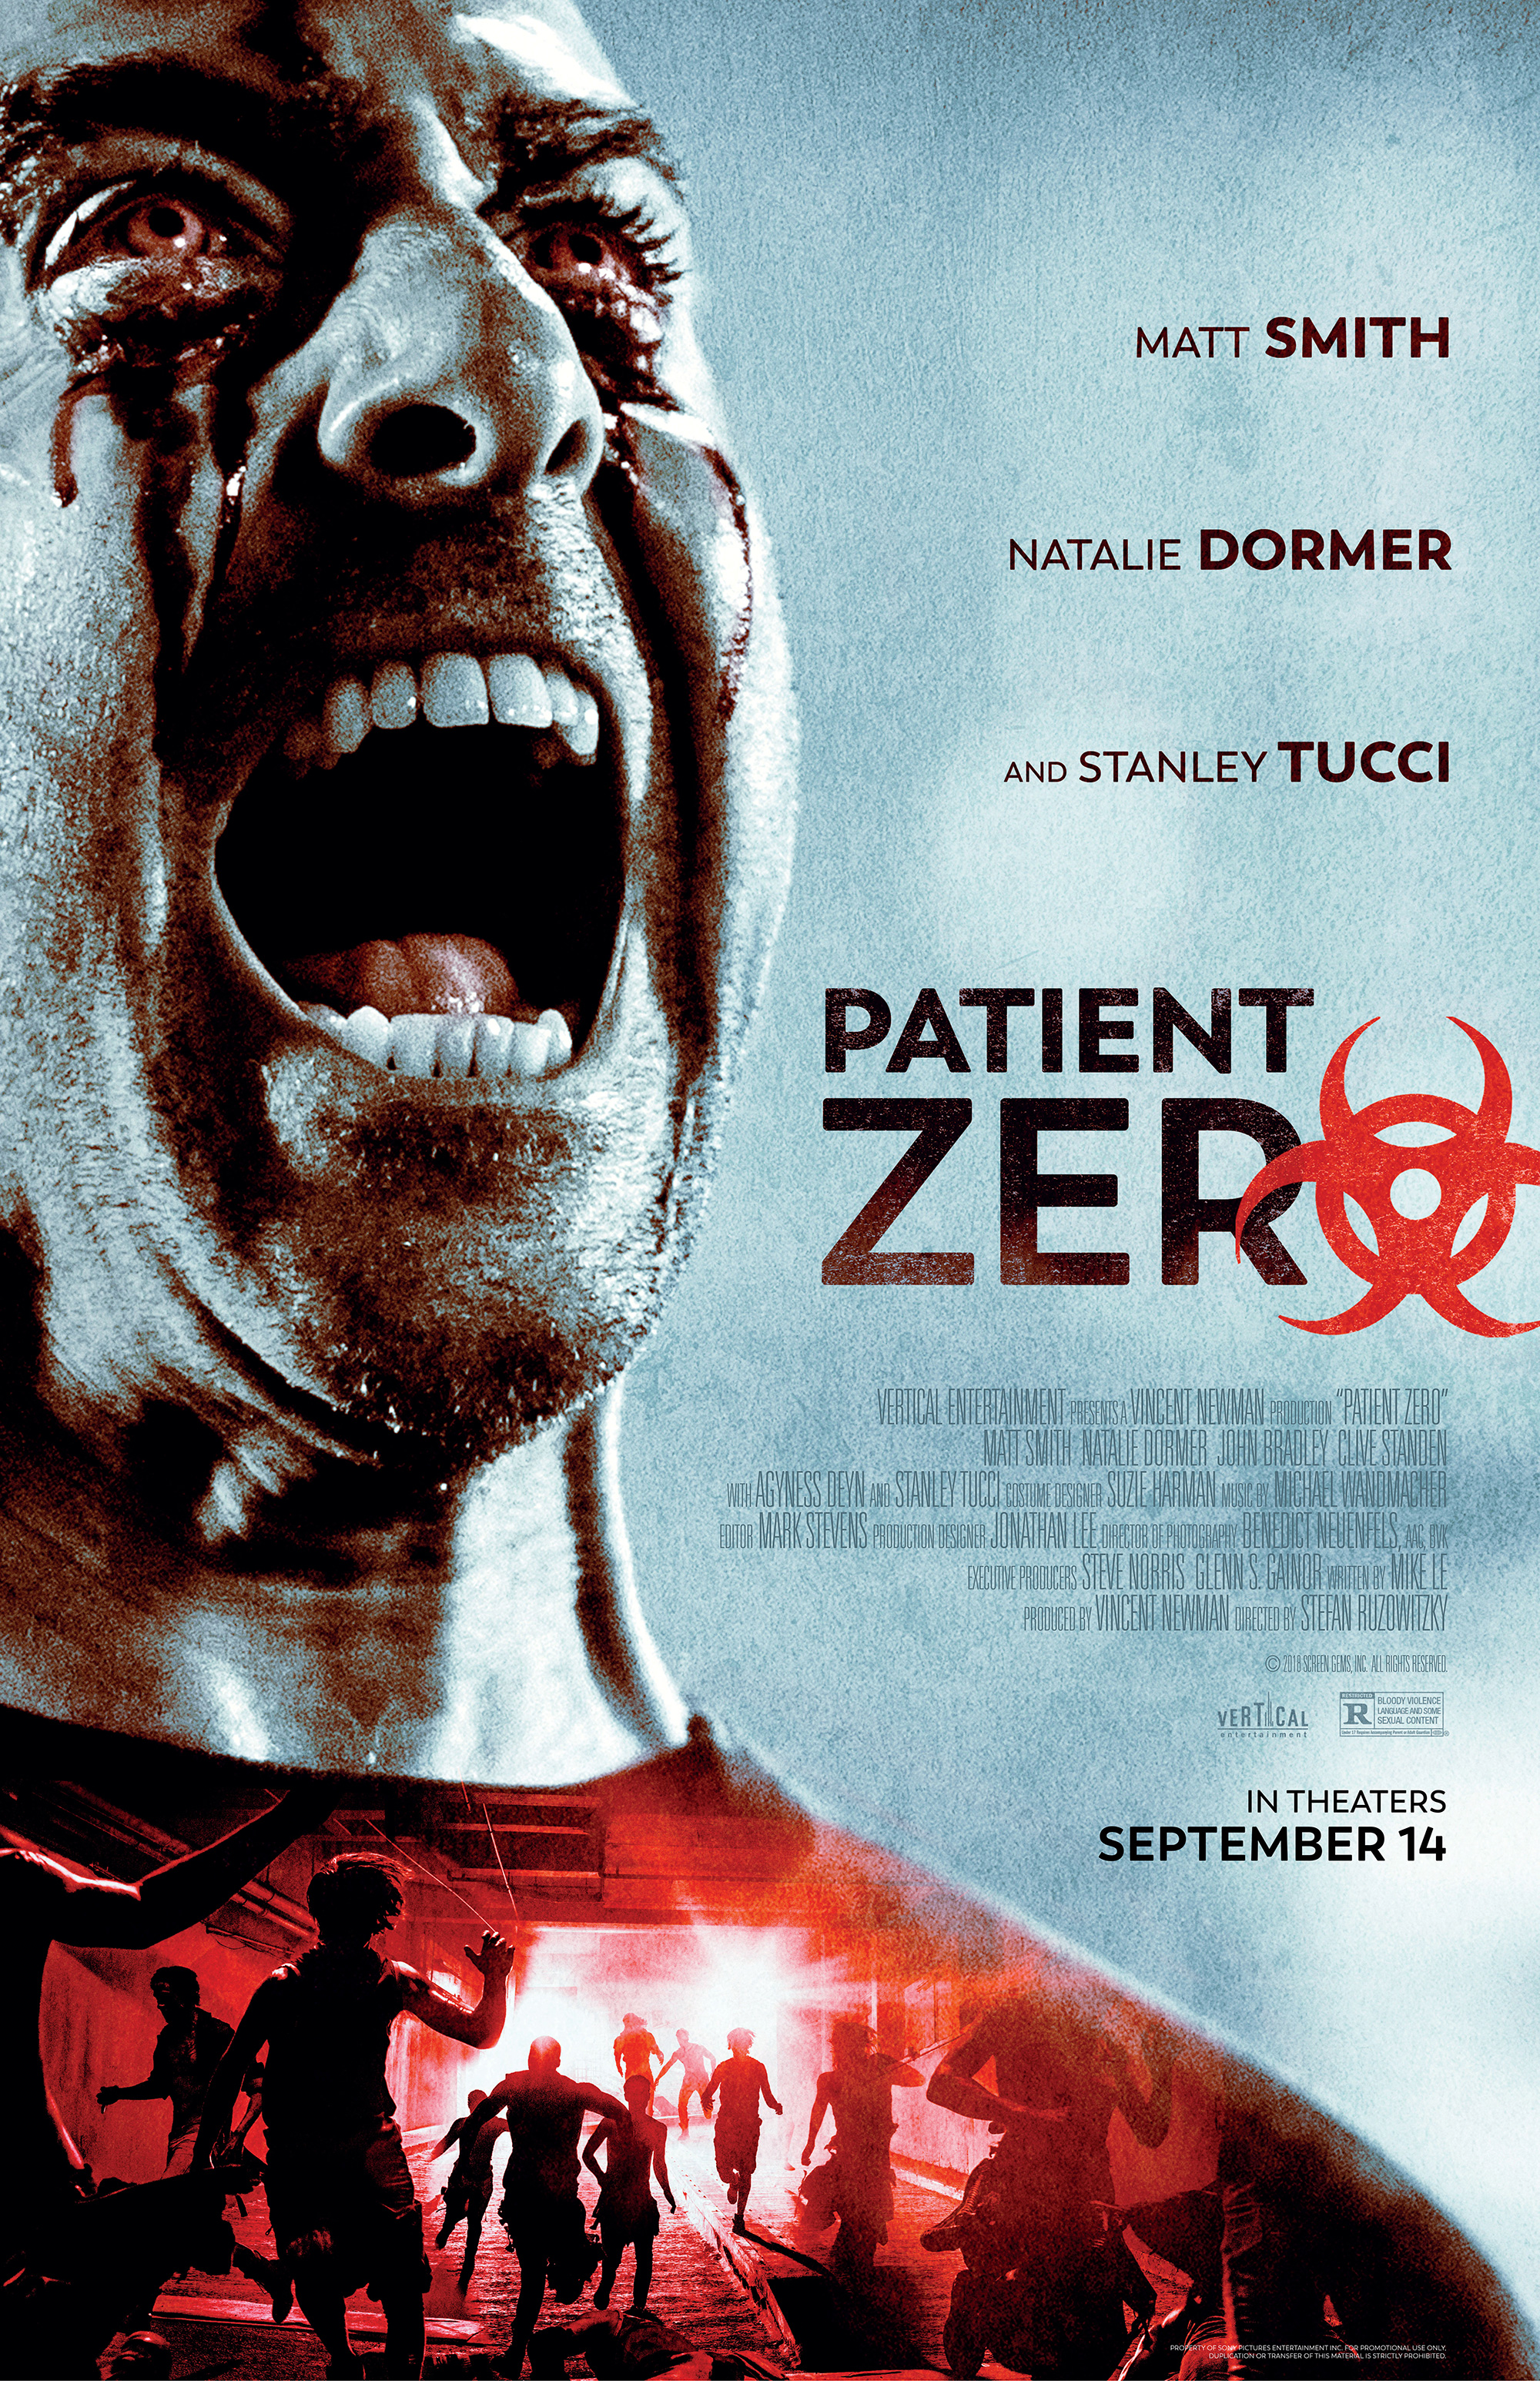 2013 BloodList script PATIENT ZERO by Mike Le gets a poster and release date! #BloodListAlum